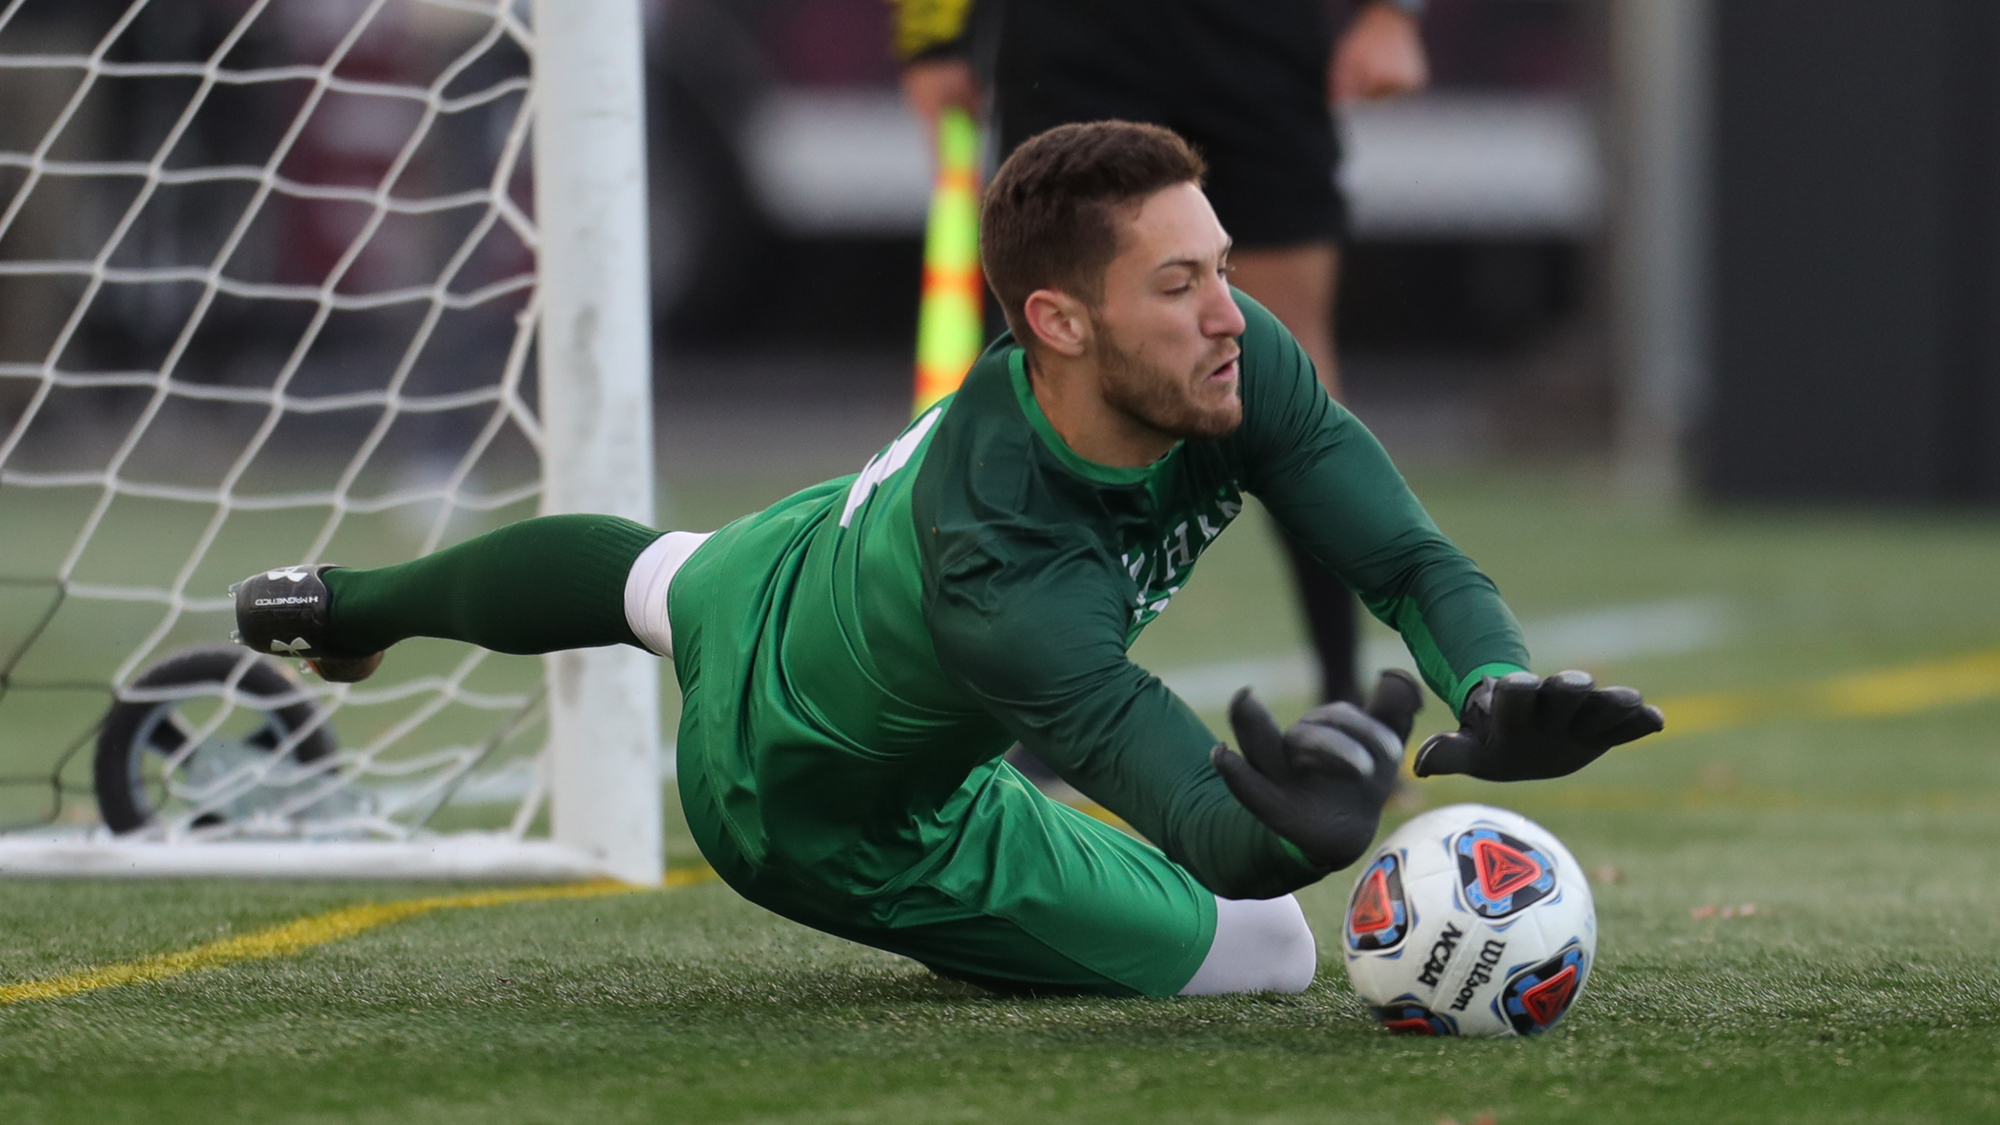 Konstantin Weis makes a save during the PK shootout vs. URI